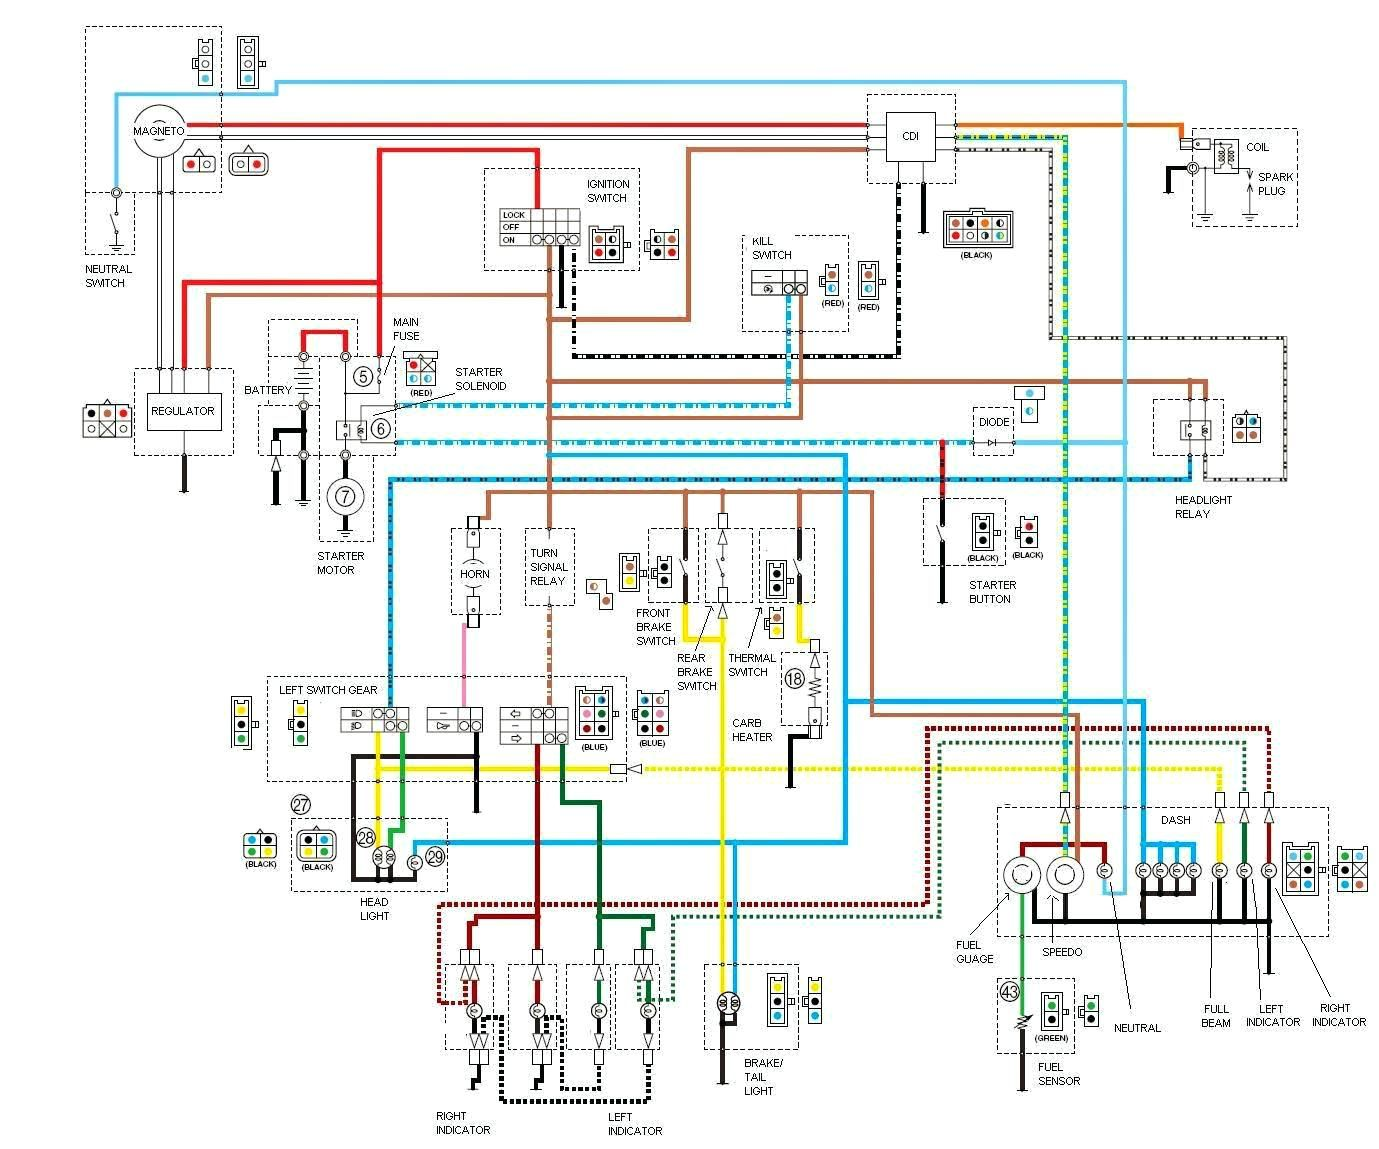 hight resolution of guitar live sound setup diagram fantastic band pa system wiring schematic contemporary comfortable ideas electrical archived on wiring diagram category with